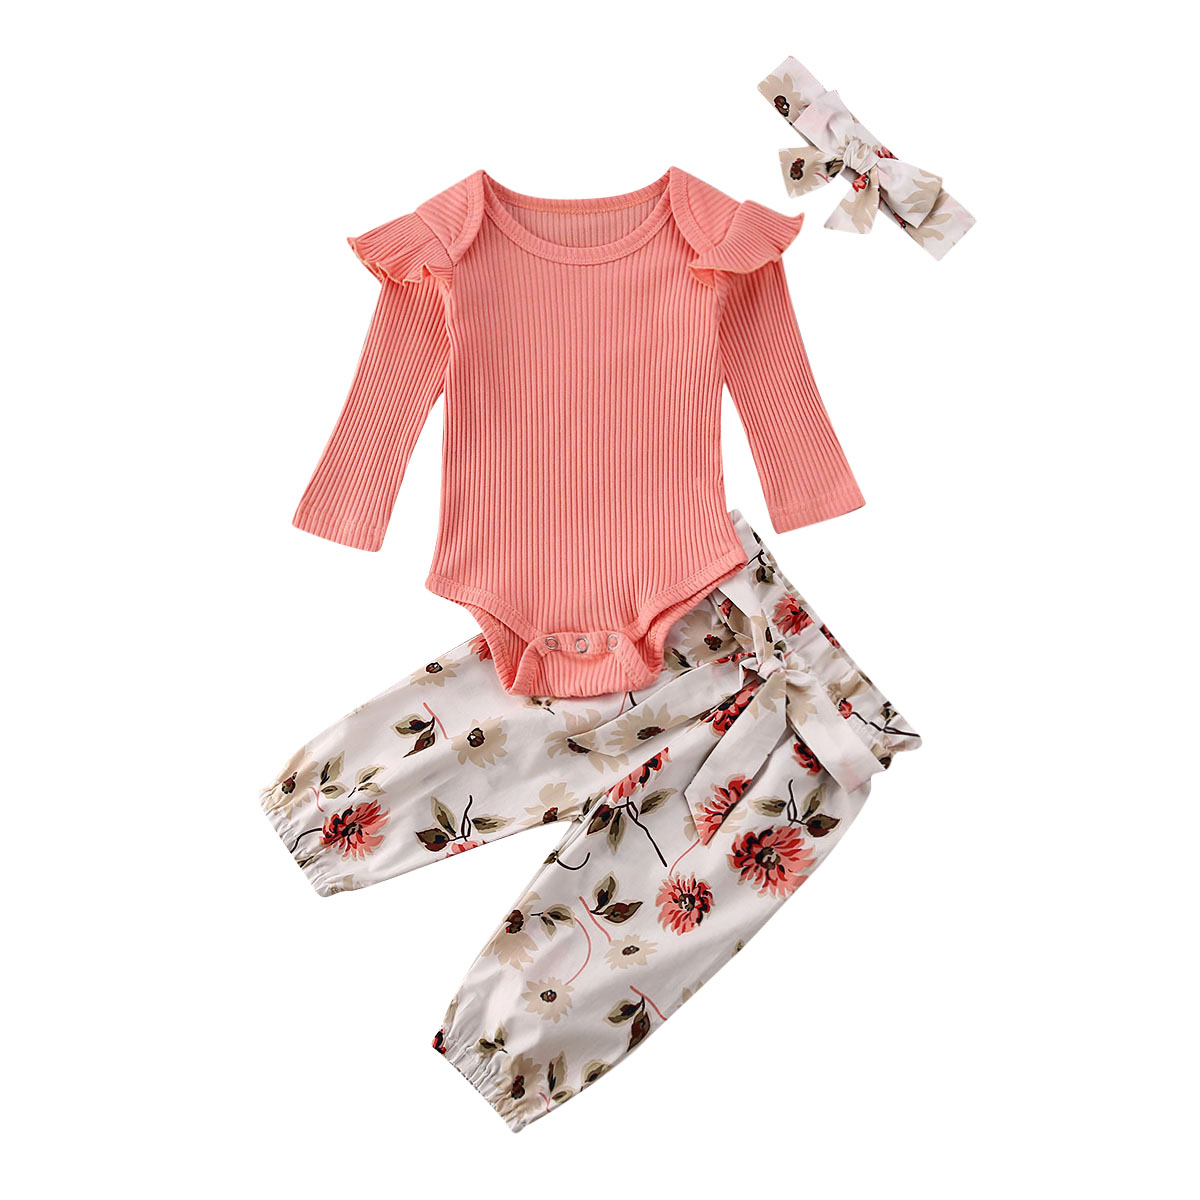 New Newborn Infant Baby Girl Clothes Set Tops Long Sleeve Romper Leggings Outfits Set Clothes